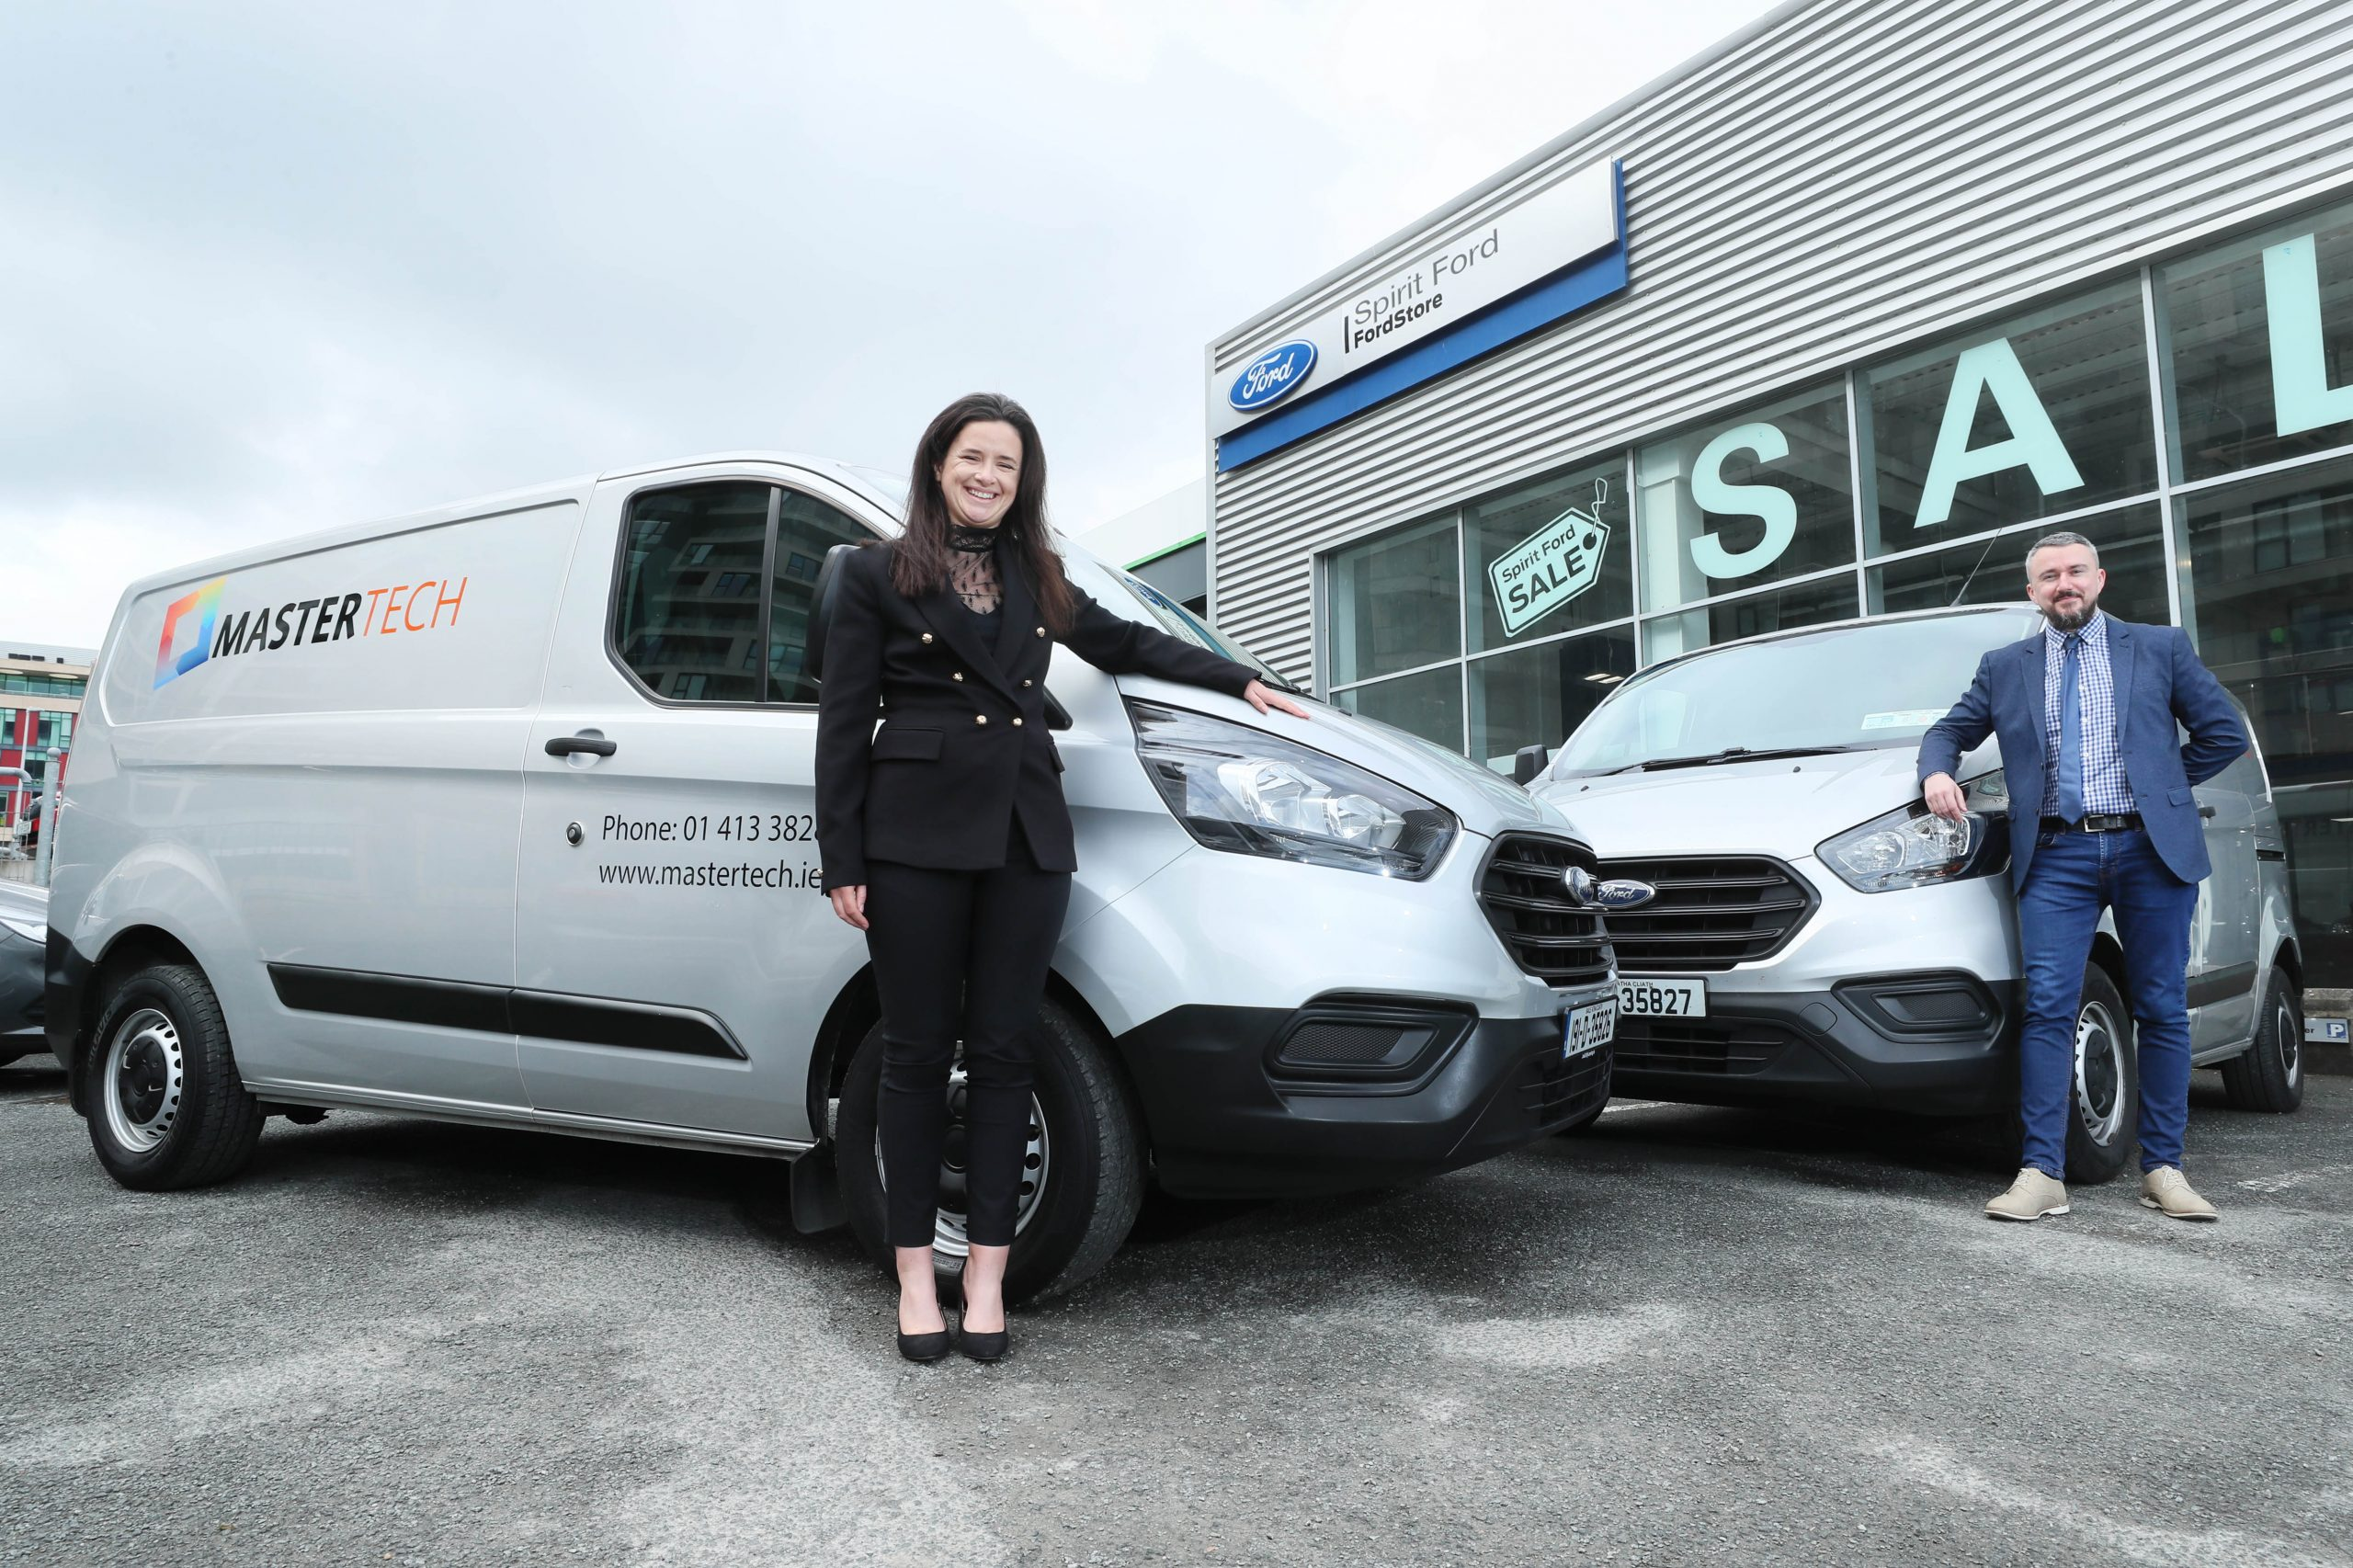 Ford launches new leasing and fleet management service to Irish market